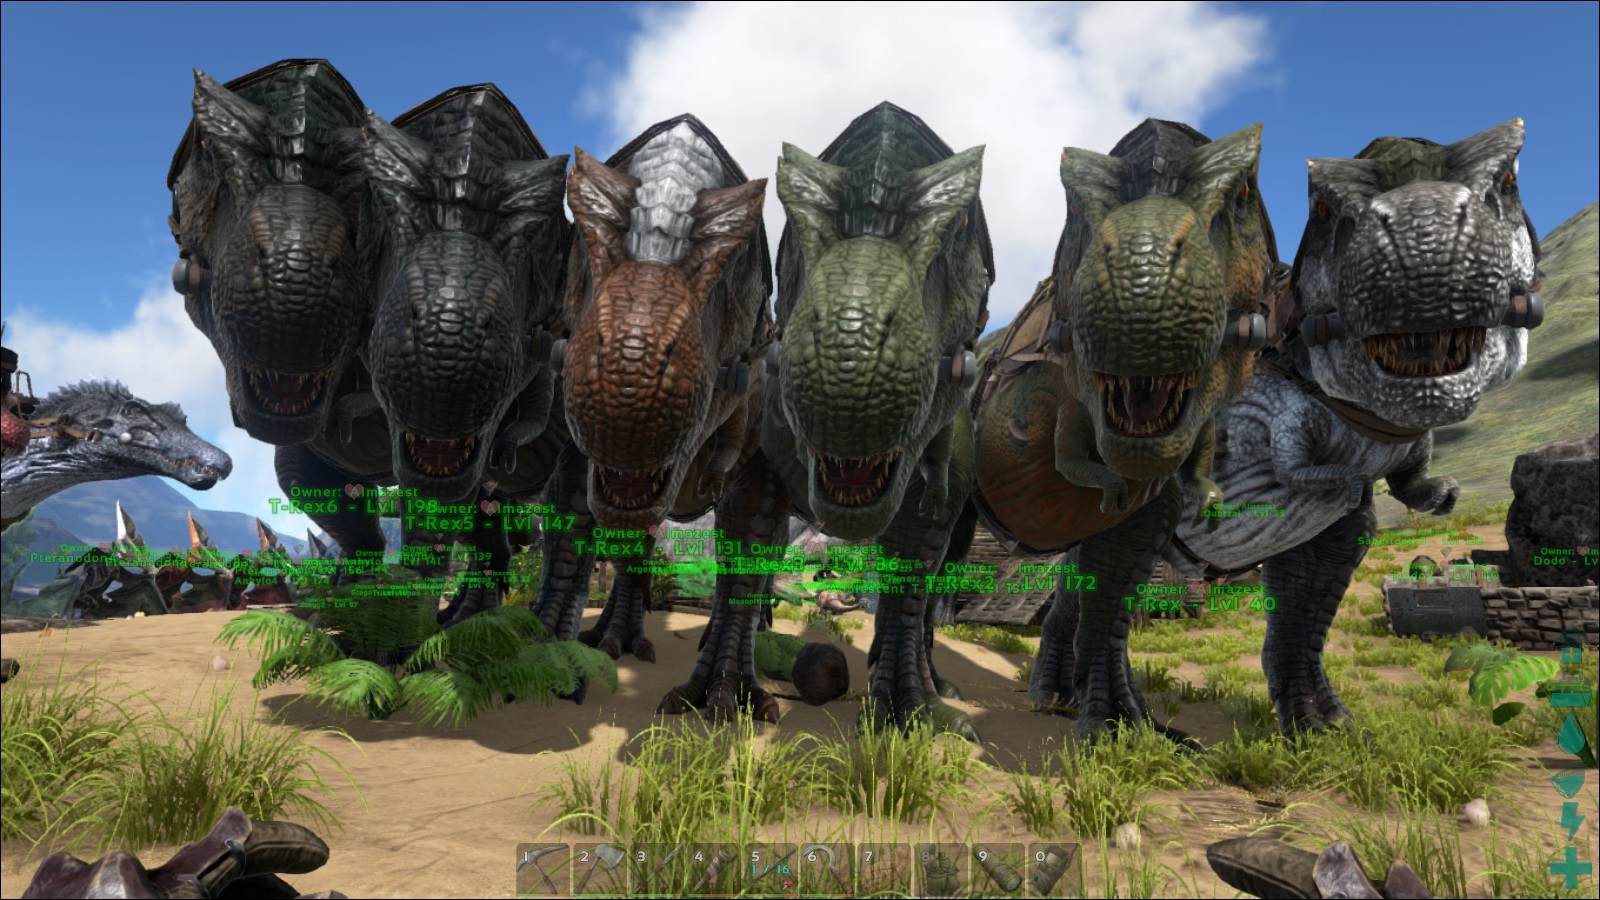 Steam community guide ark game mechanic taming breeding taming a dino is a big part of the ark gameplay and players might want to get stronger dino as heshe makes progress in the game malvernweather